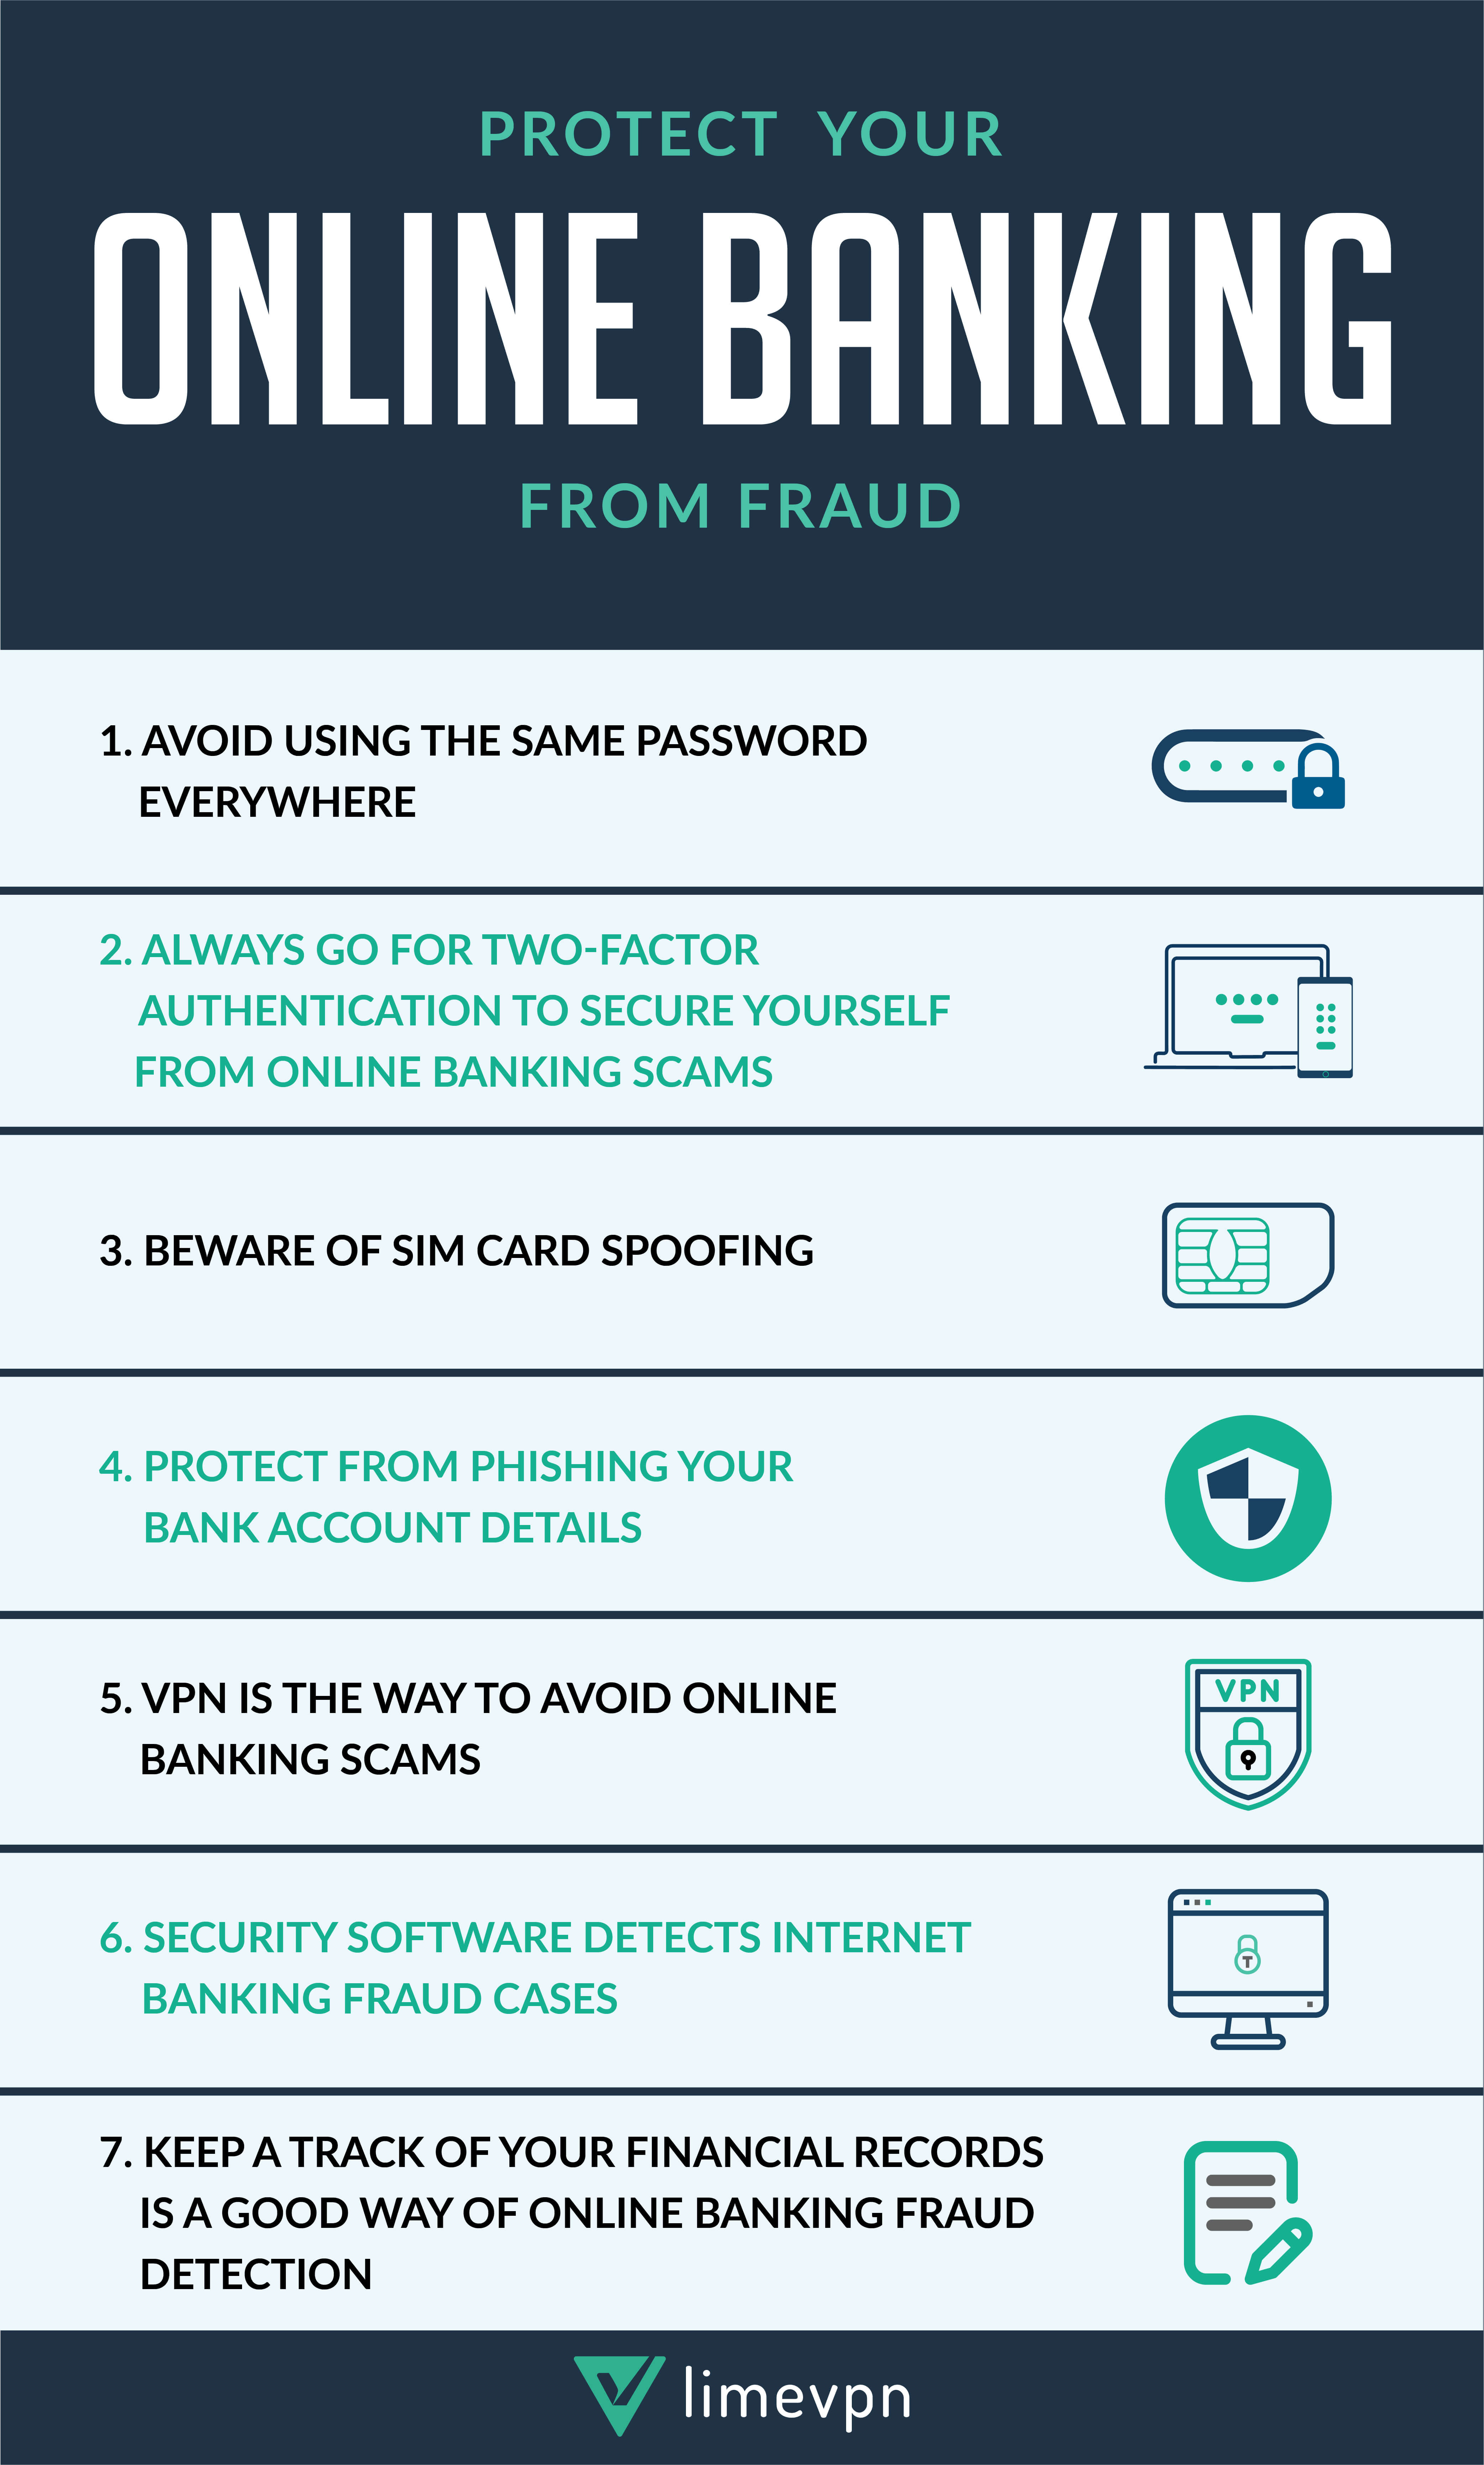 online banking protection - protect your online banking from hackers - protect from online banking fraud - online banking scams